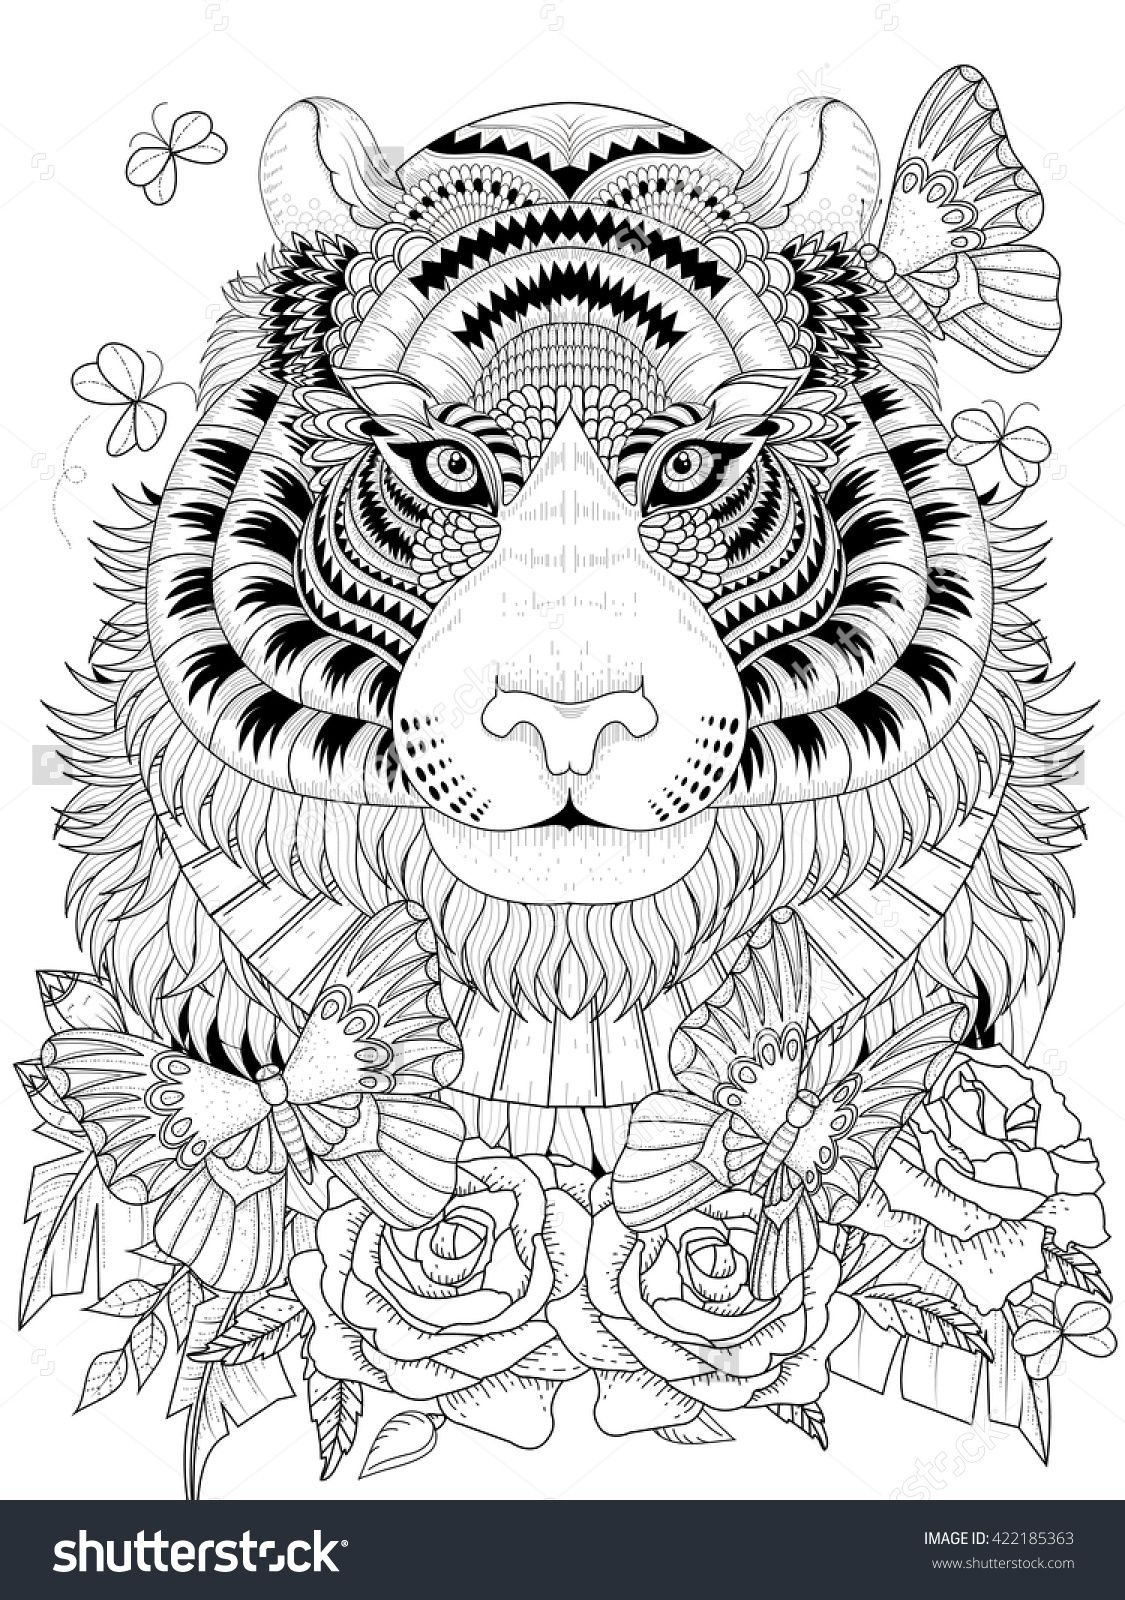 Imposing Tiger With Floral Element - Adult Coloring Page ...